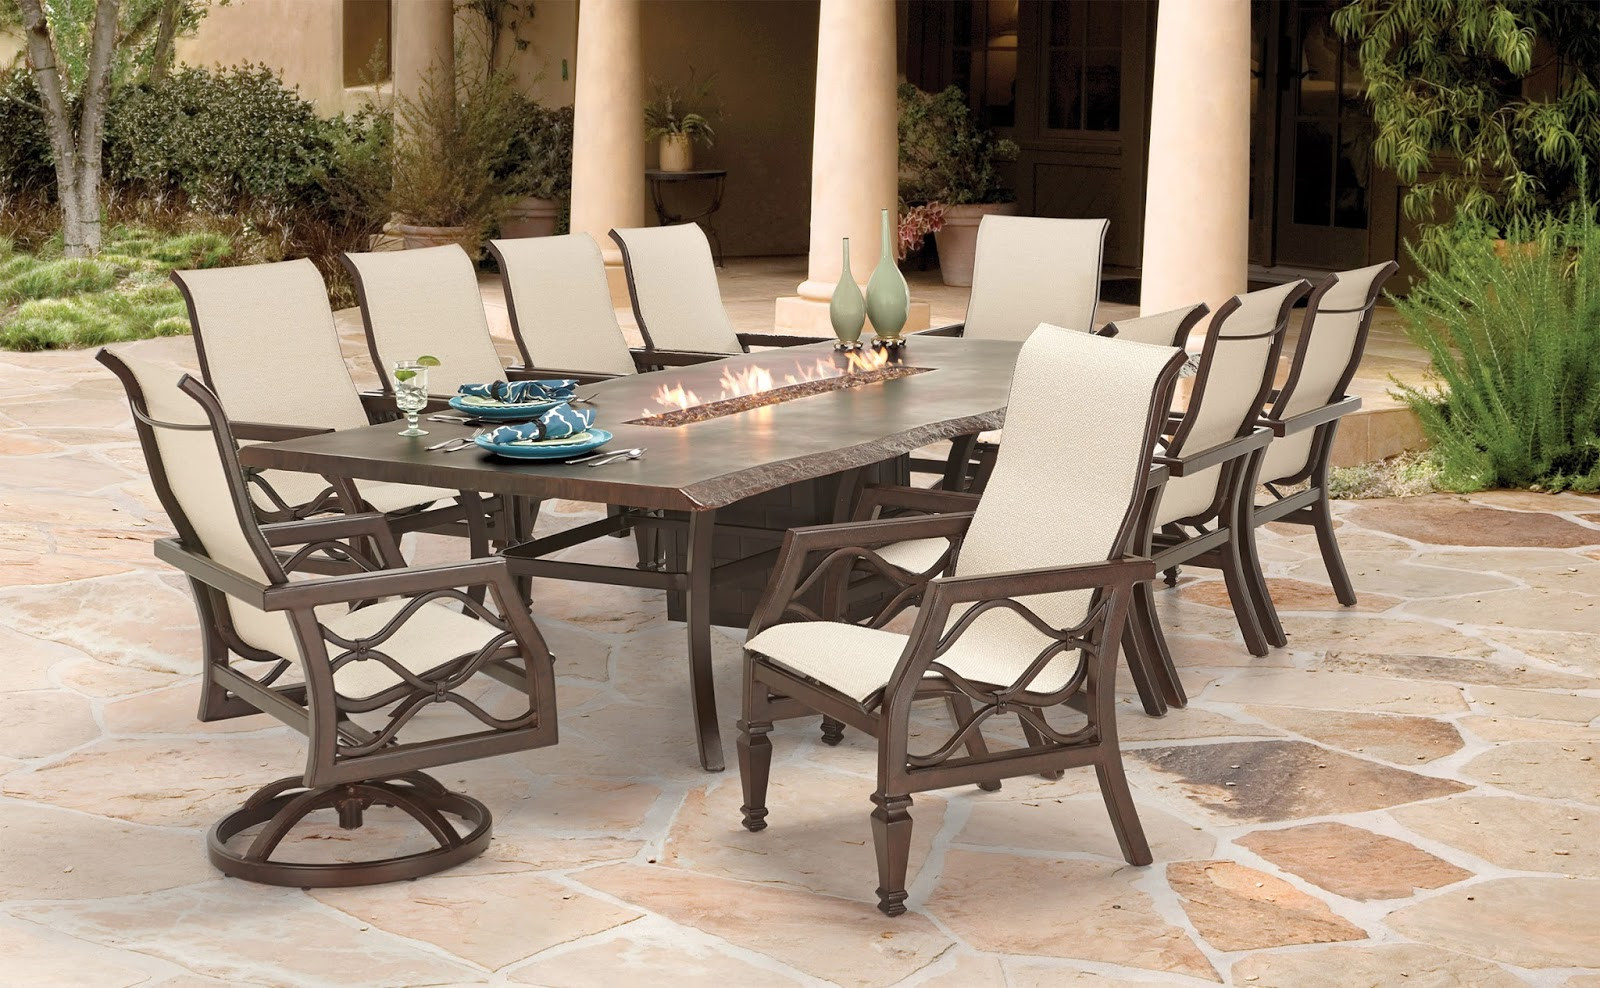 Propane Fire Pit Table Set  Propane Fire Pit Table Set Dining Costco Barrel Outdoor